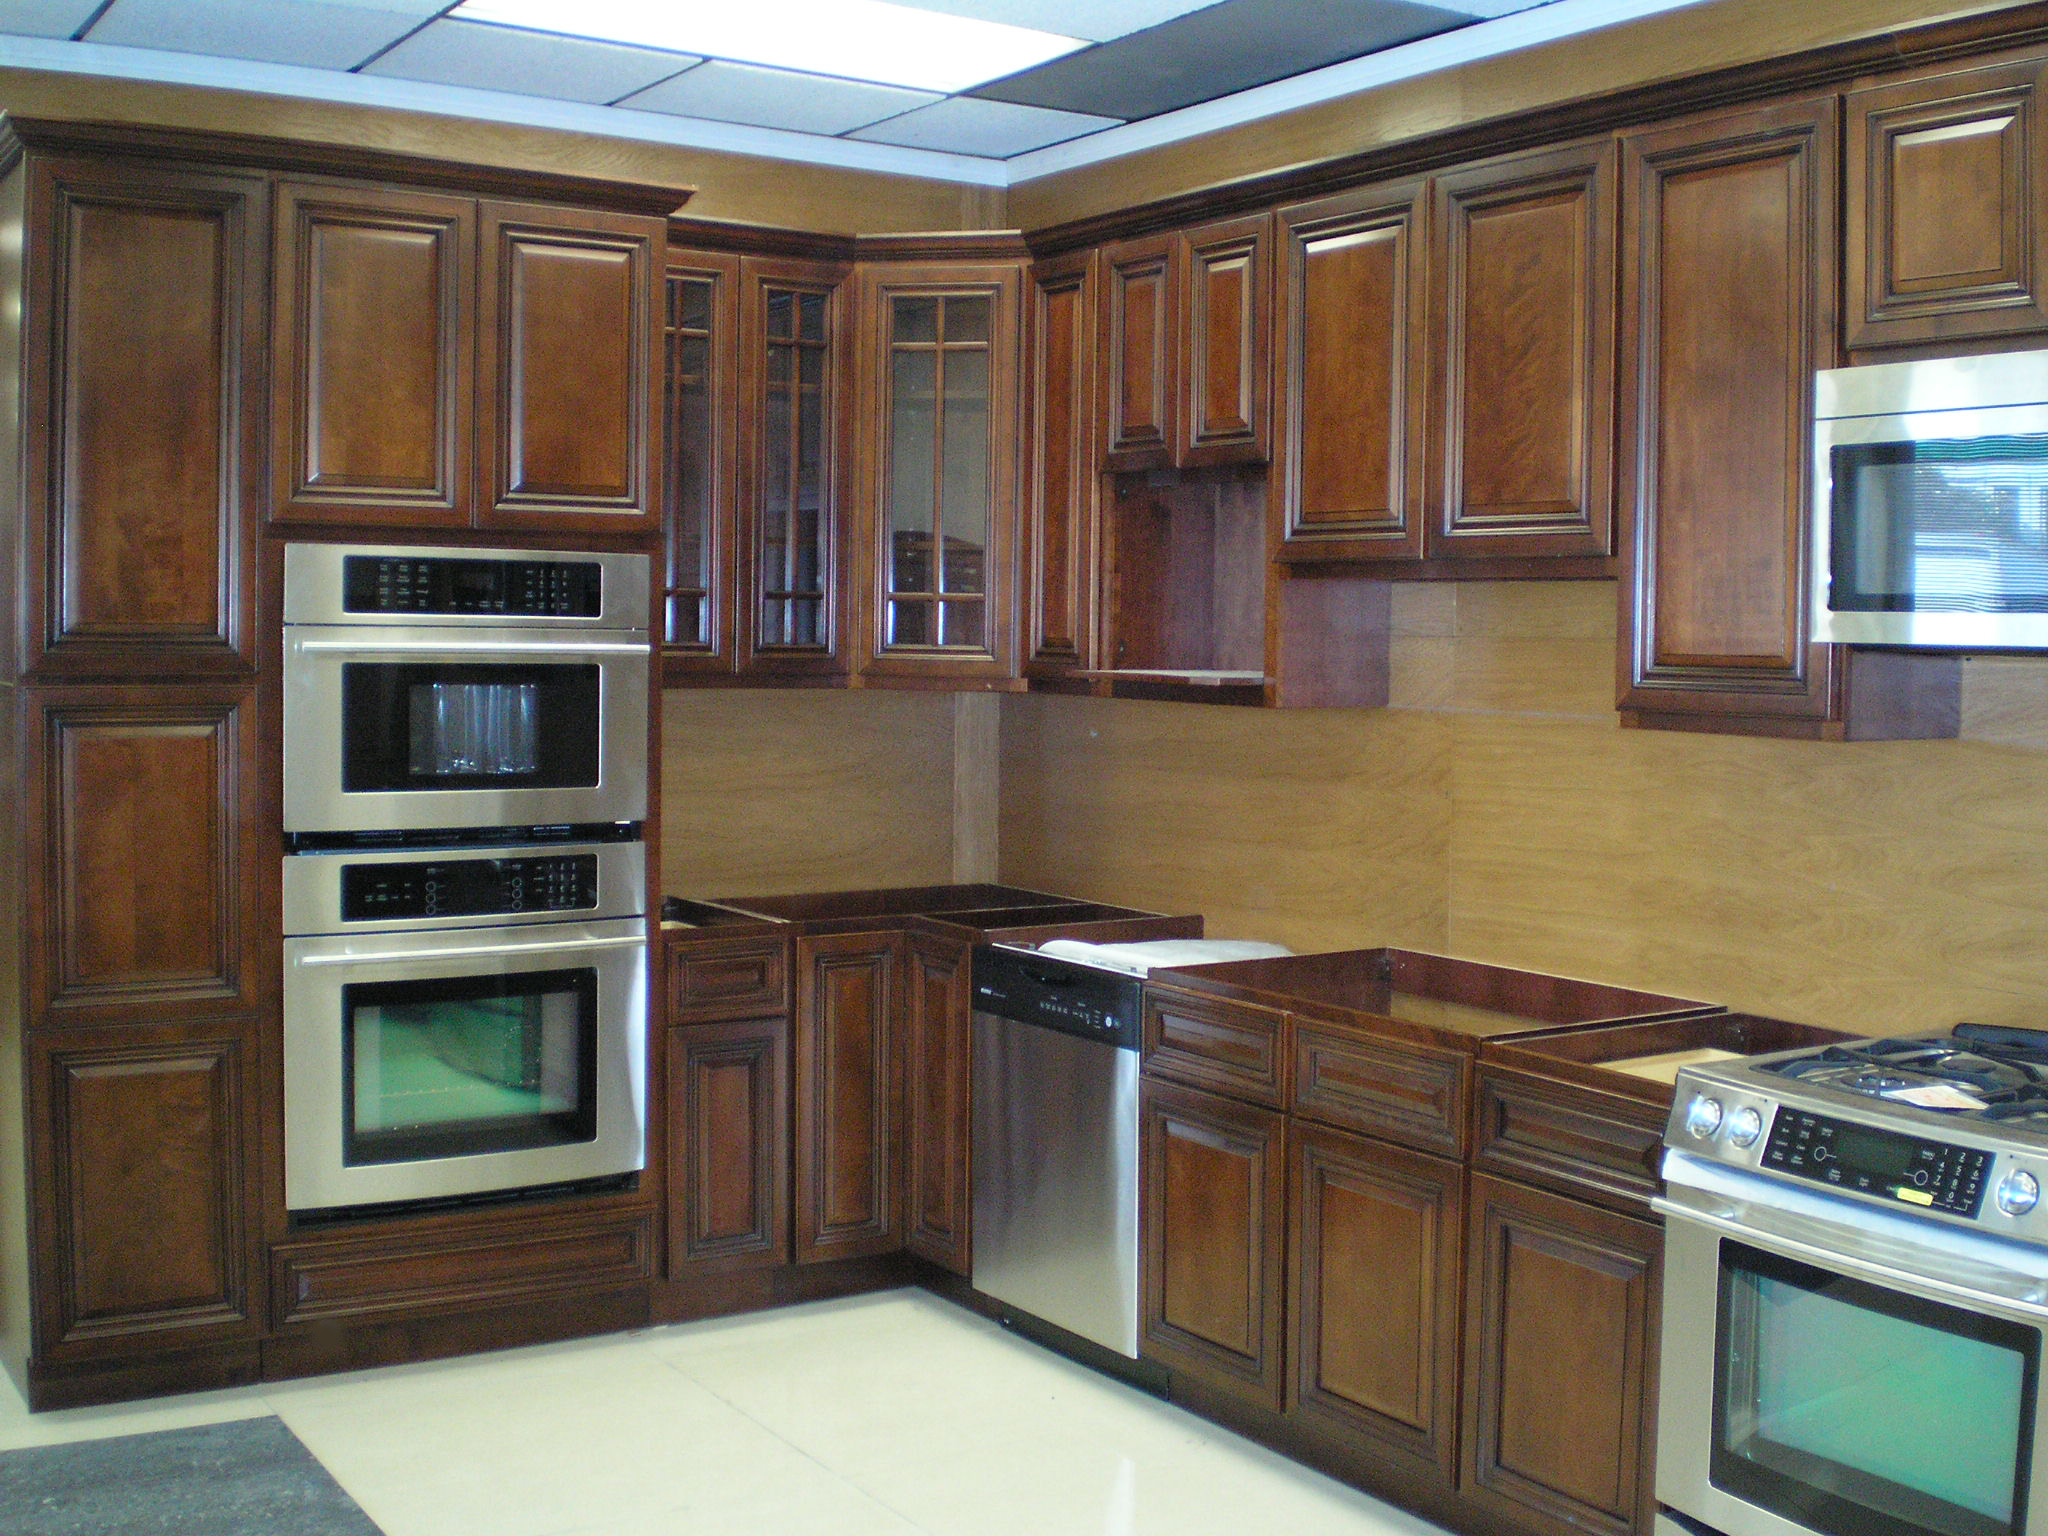 Walnut Kitchen Cabinets | 2048 x 1536 · 998 kB · jpeg | 2048 x 1536 · 998 kB · jpeg